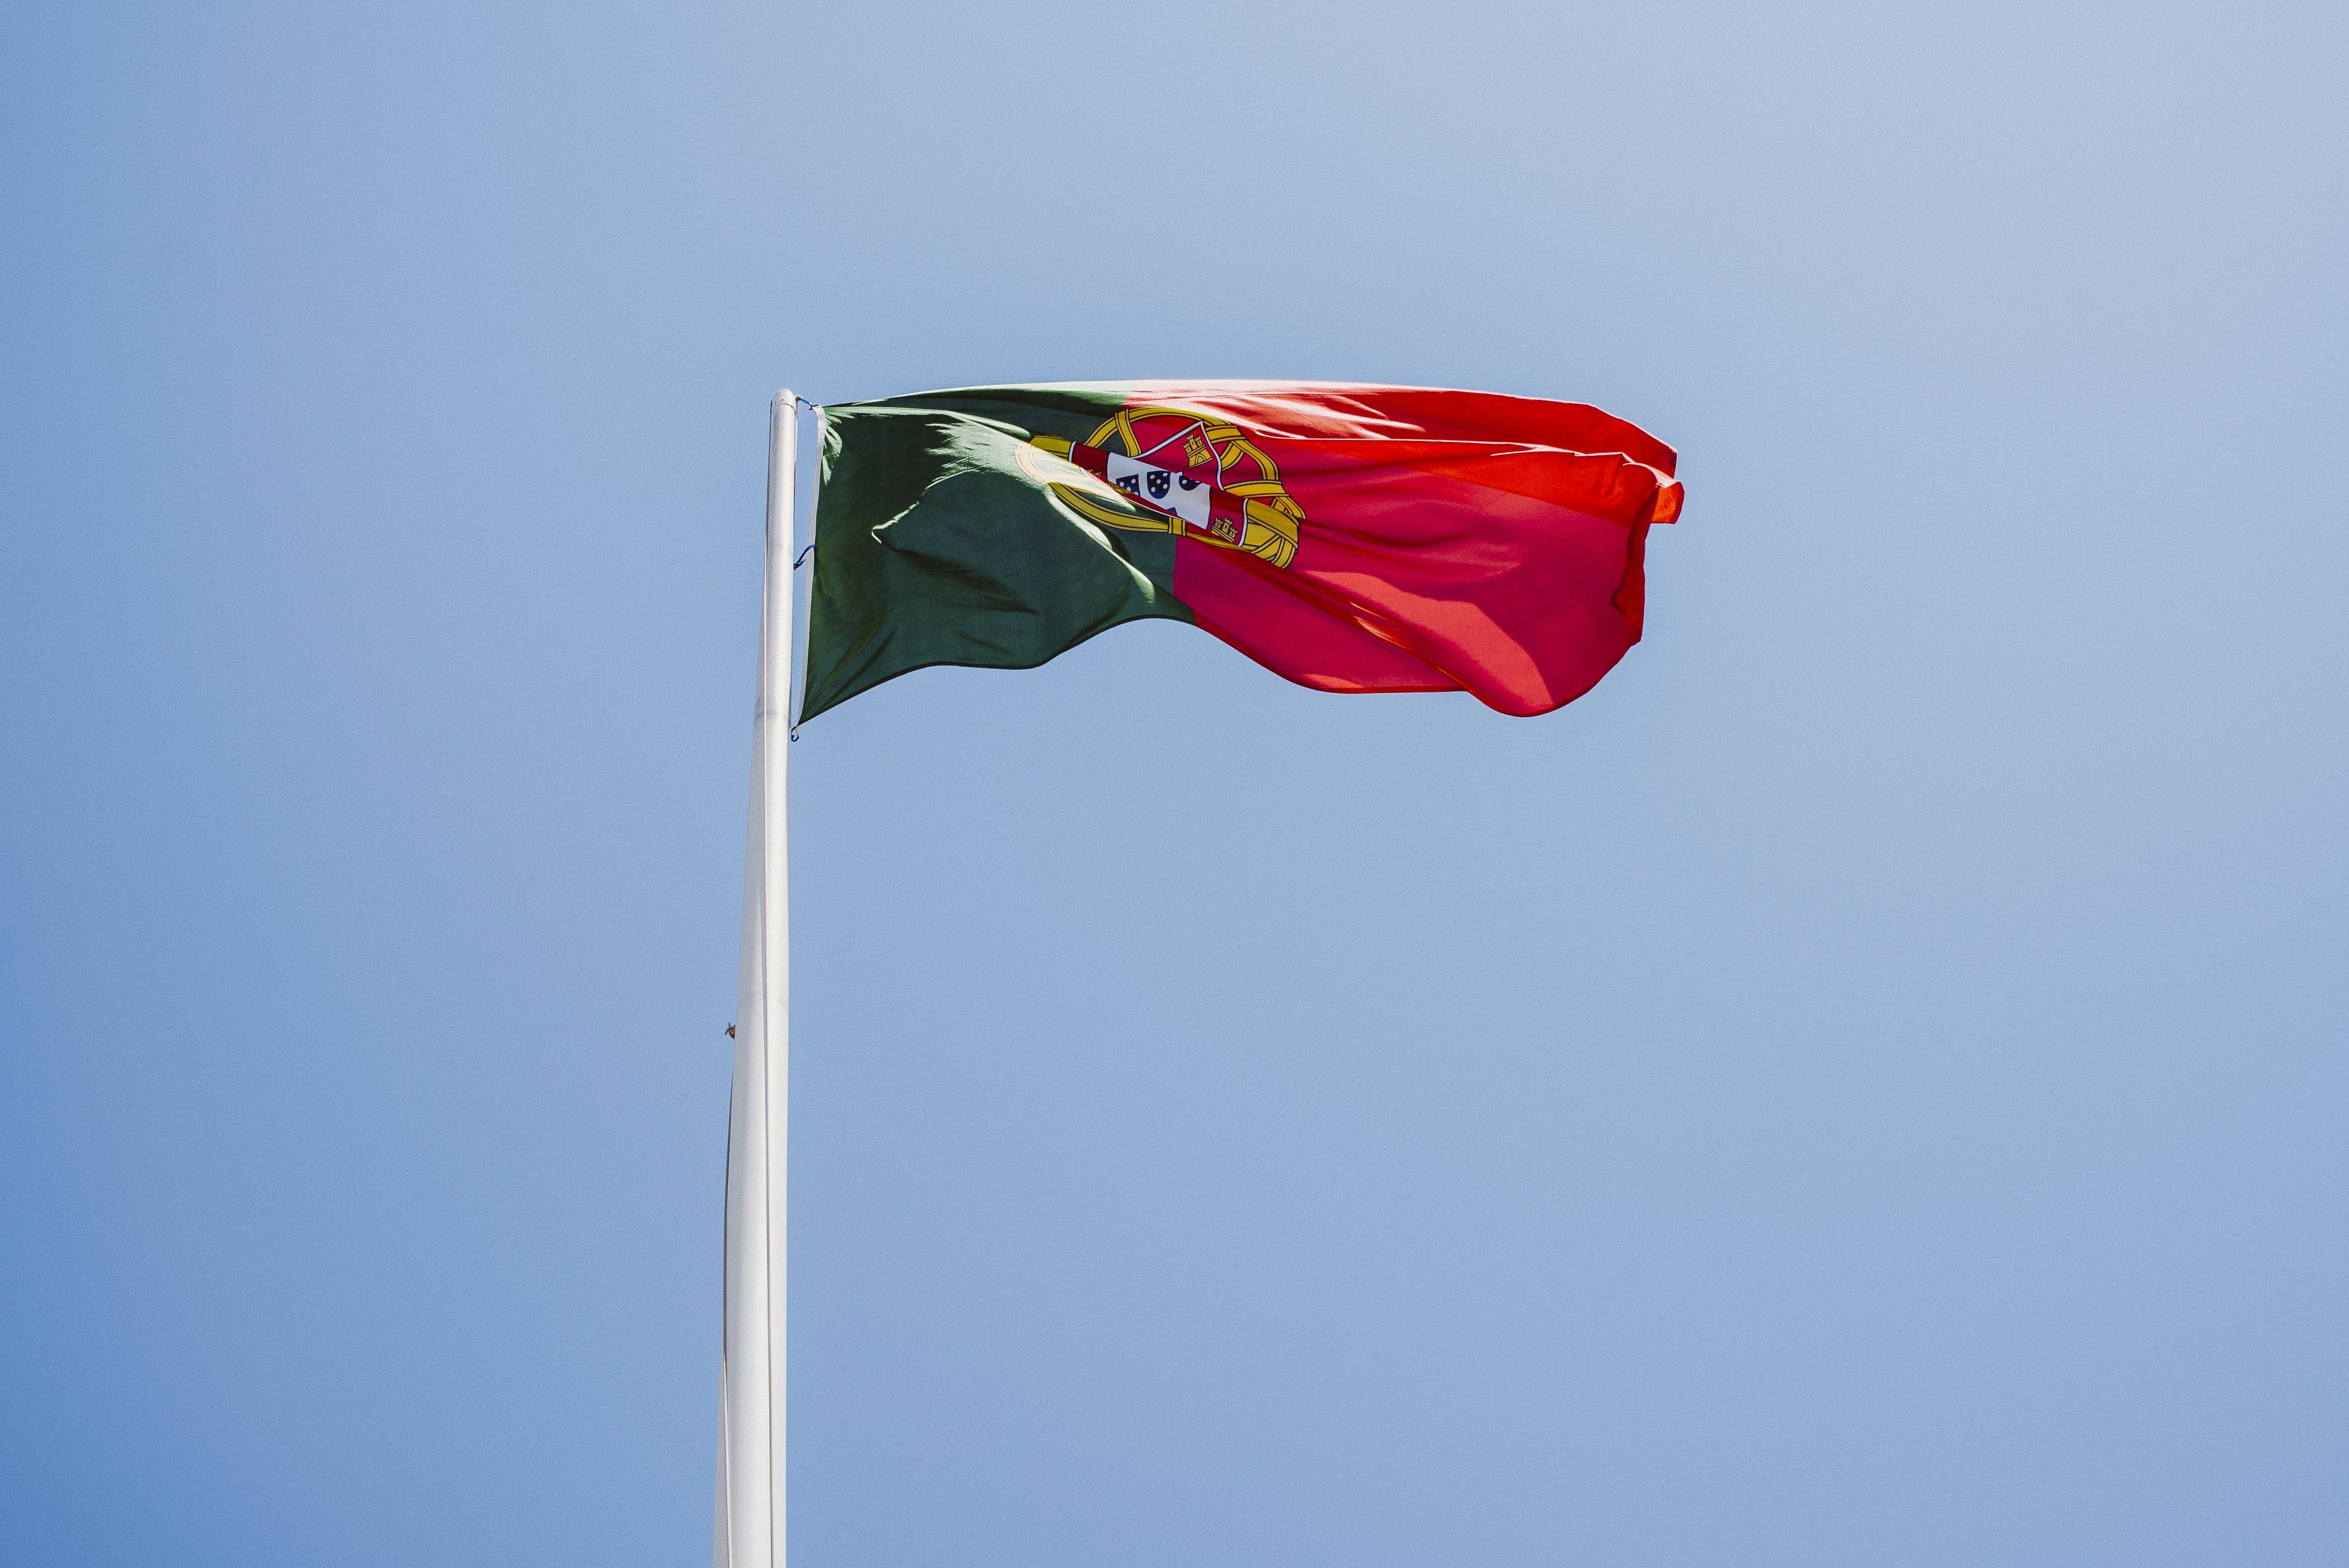 flag of Portugal hoisted on white metal pole